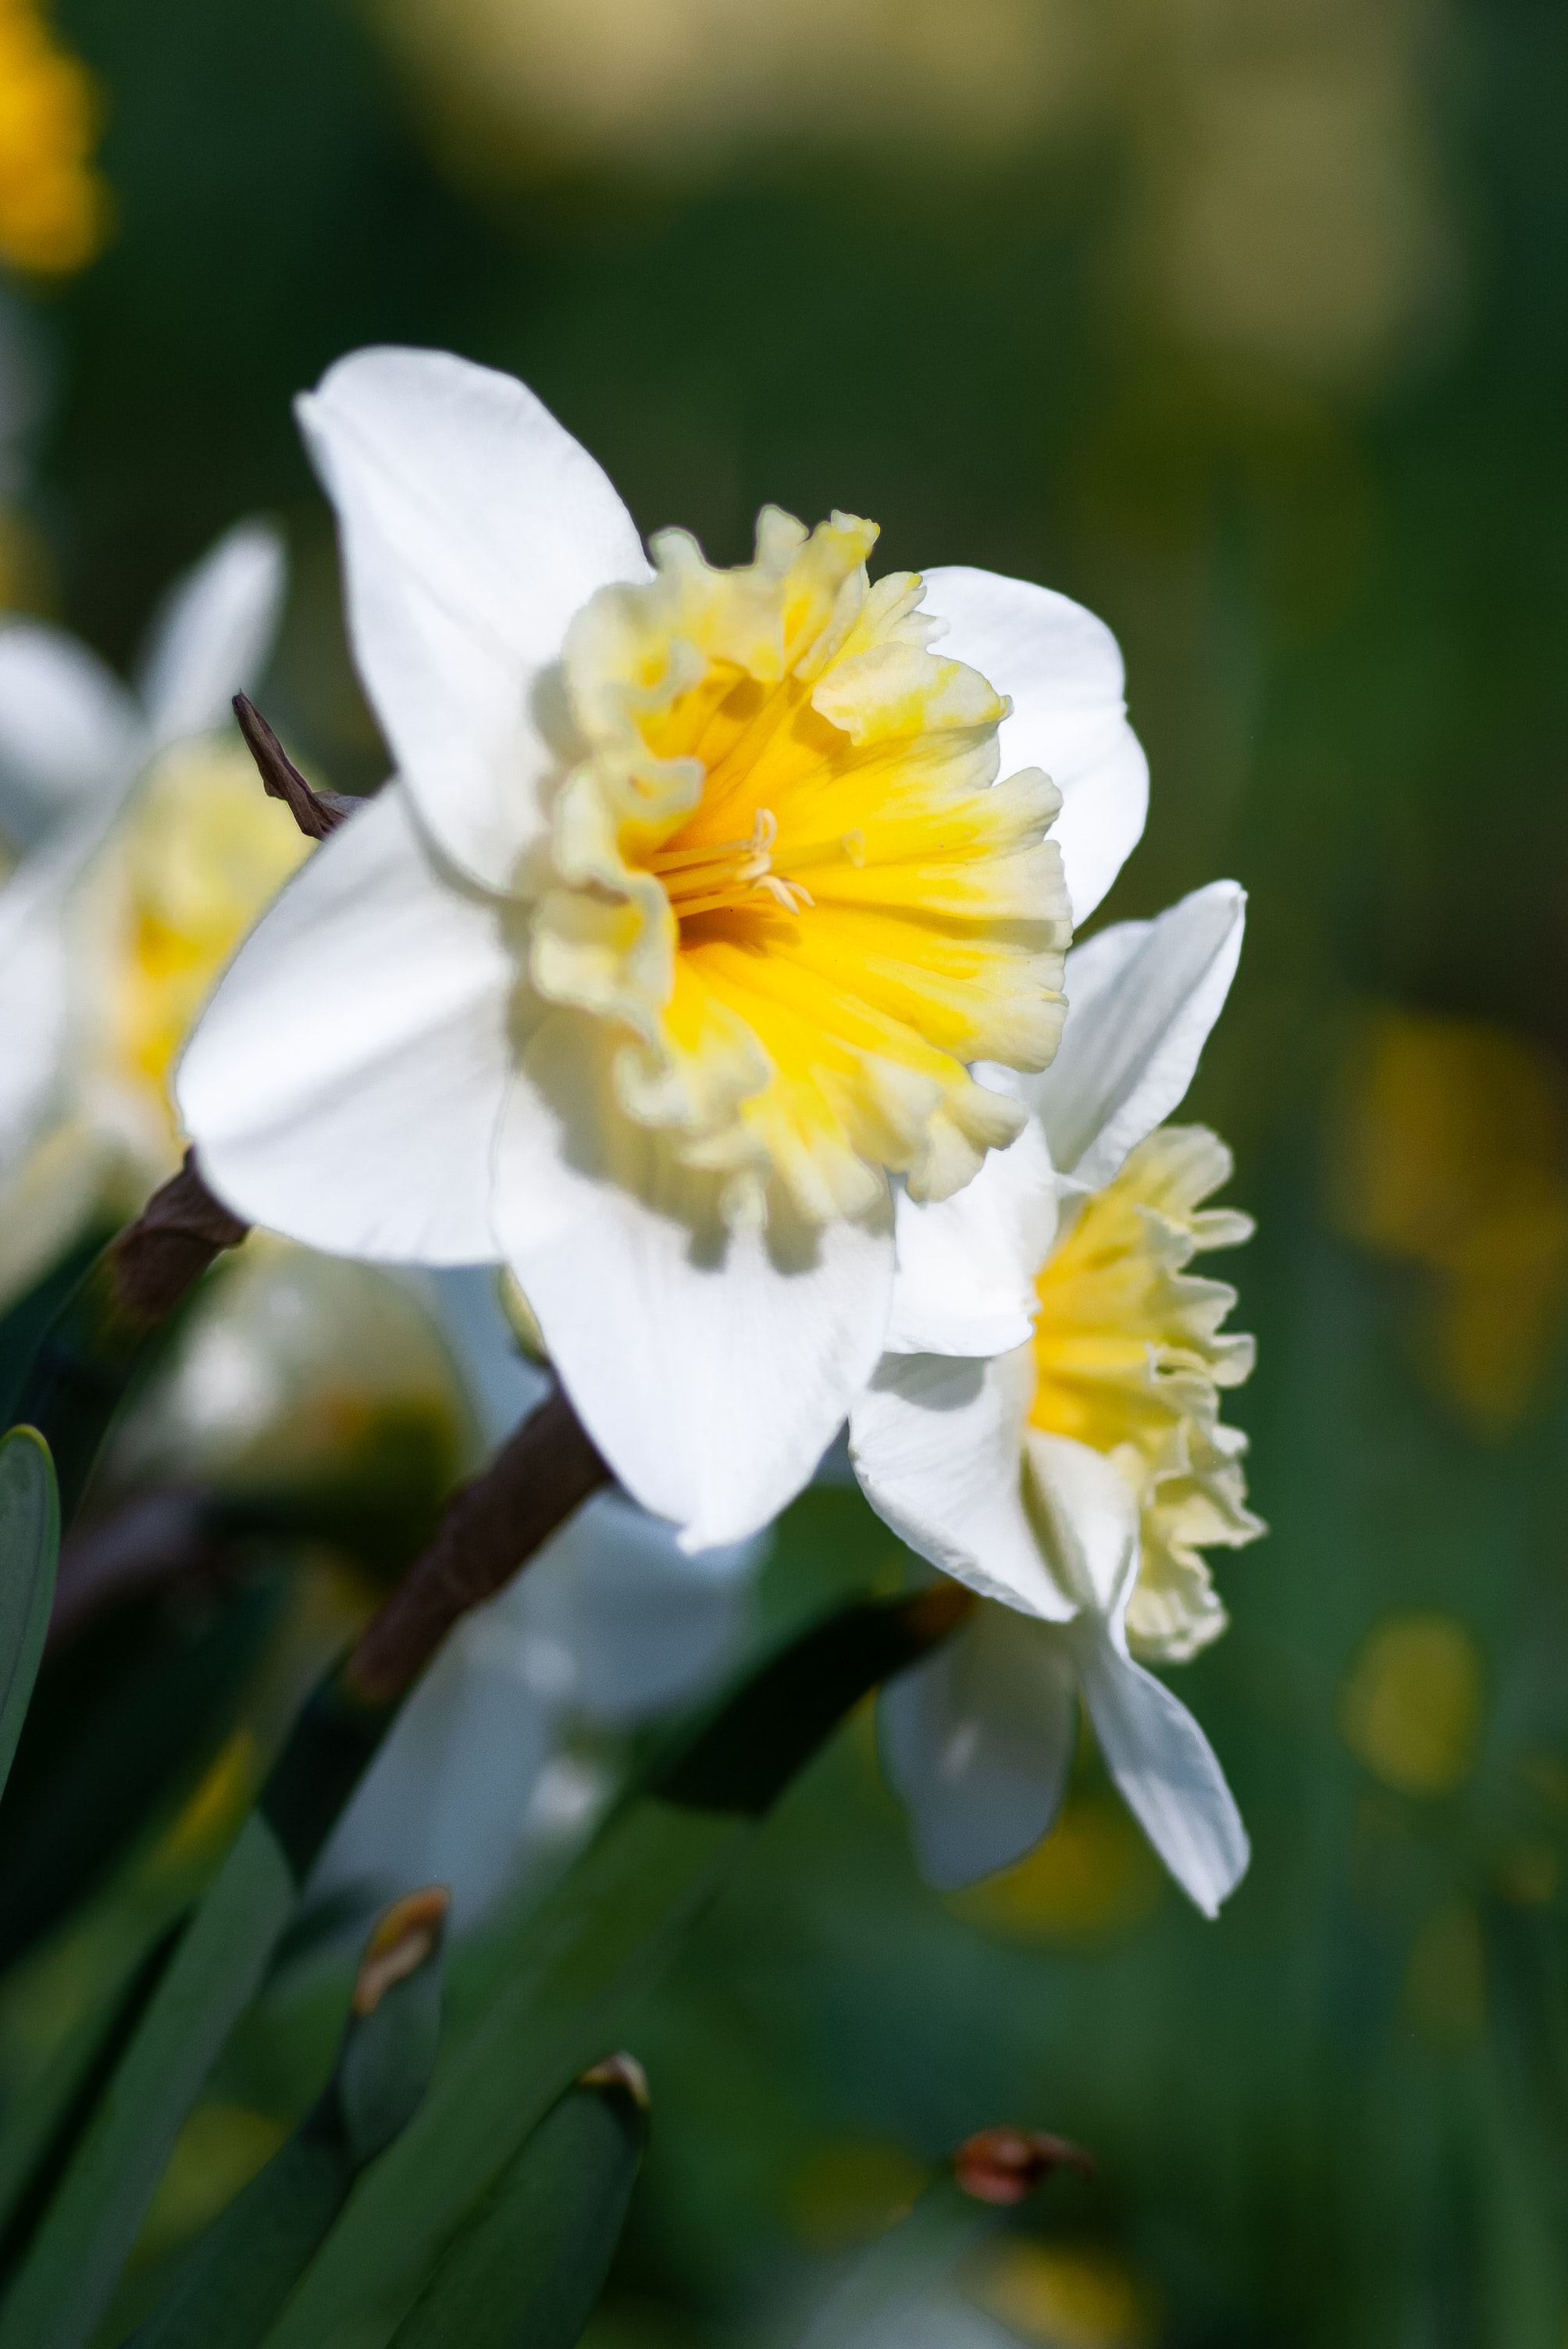 Daffodil Flower Wallpapers